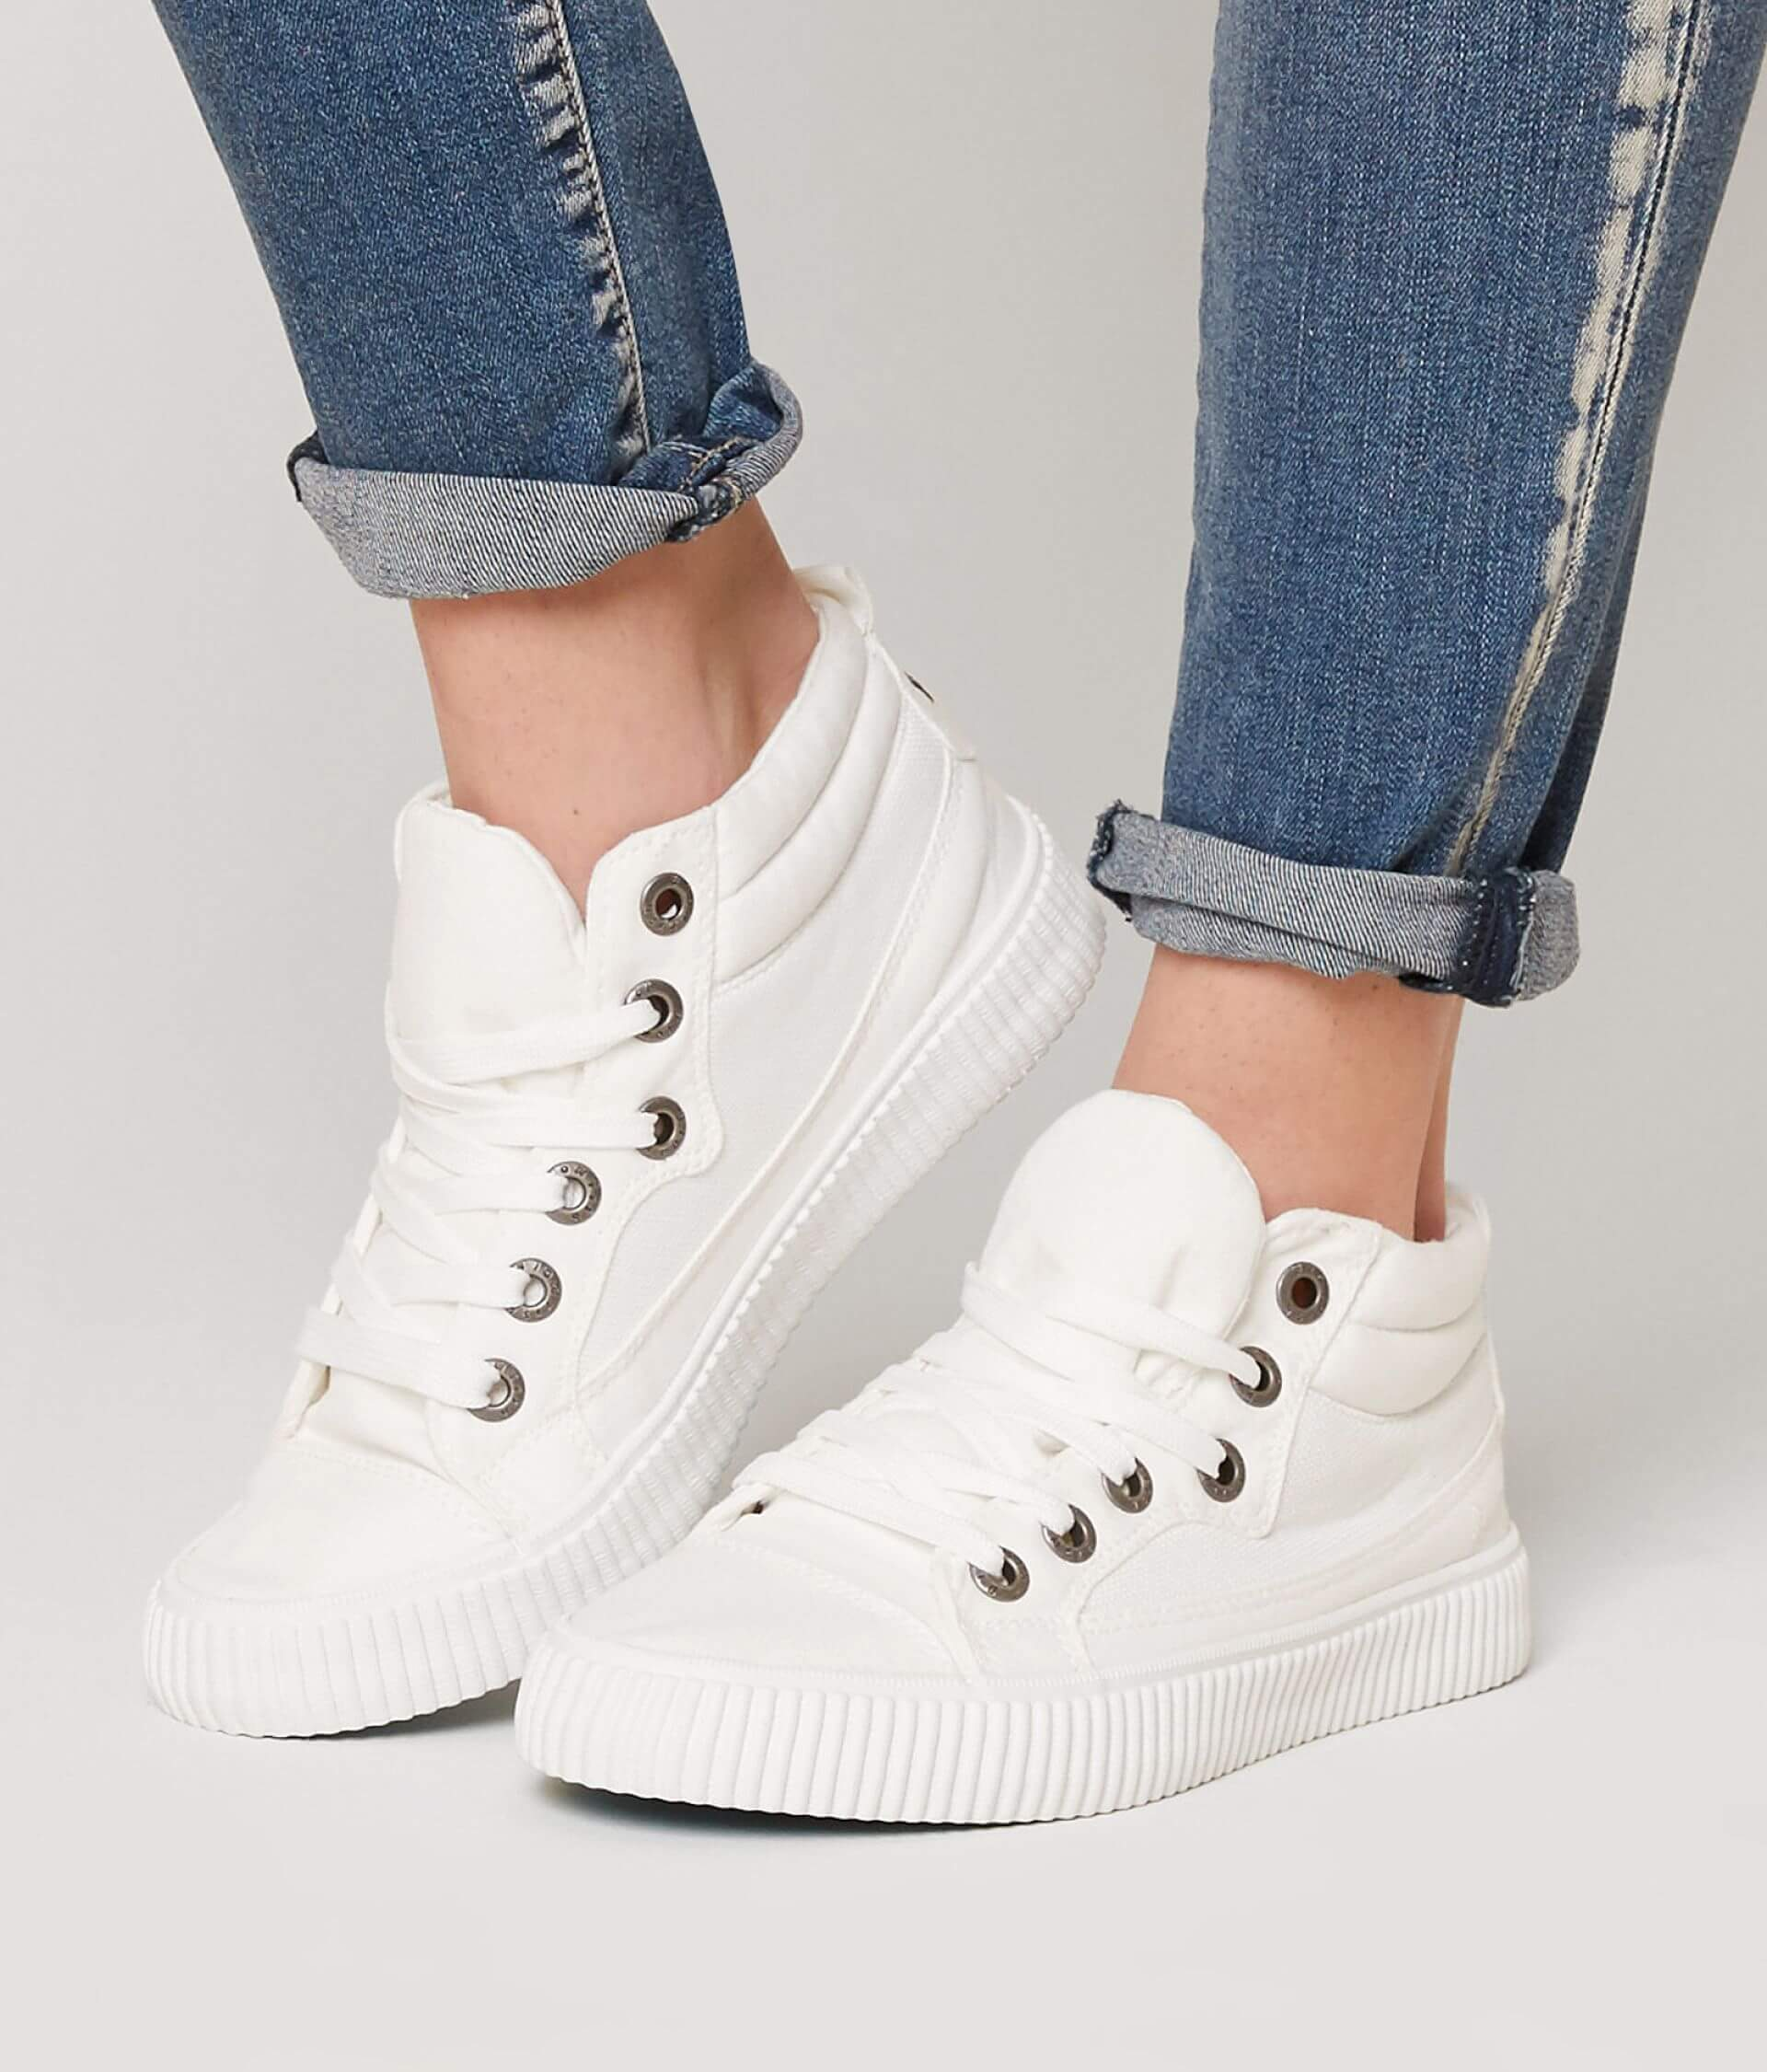 ff9a4cb4f90 Blowfish Crawl Shoe - Women s Shoes in White Washed Canvas Mesh